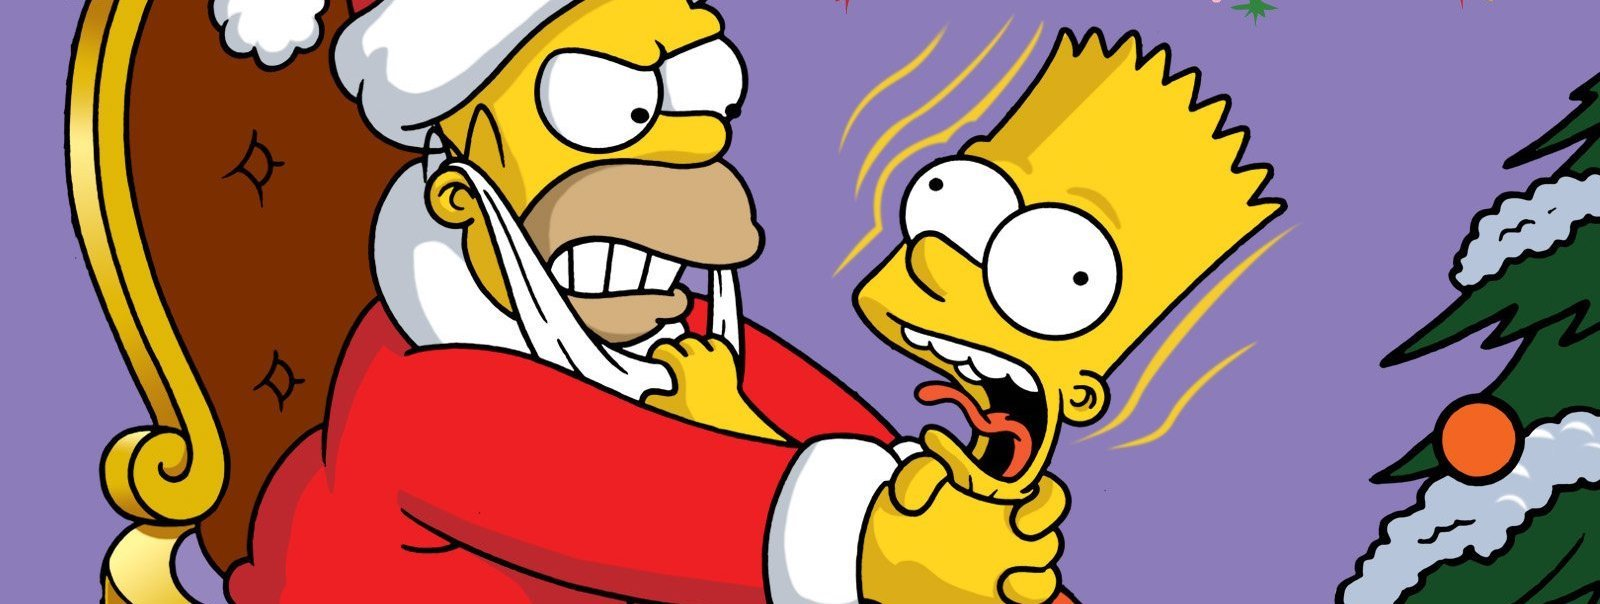 The Simpsons Christmas Episodes.Best Simpsons Christmas Episodes Finalboss